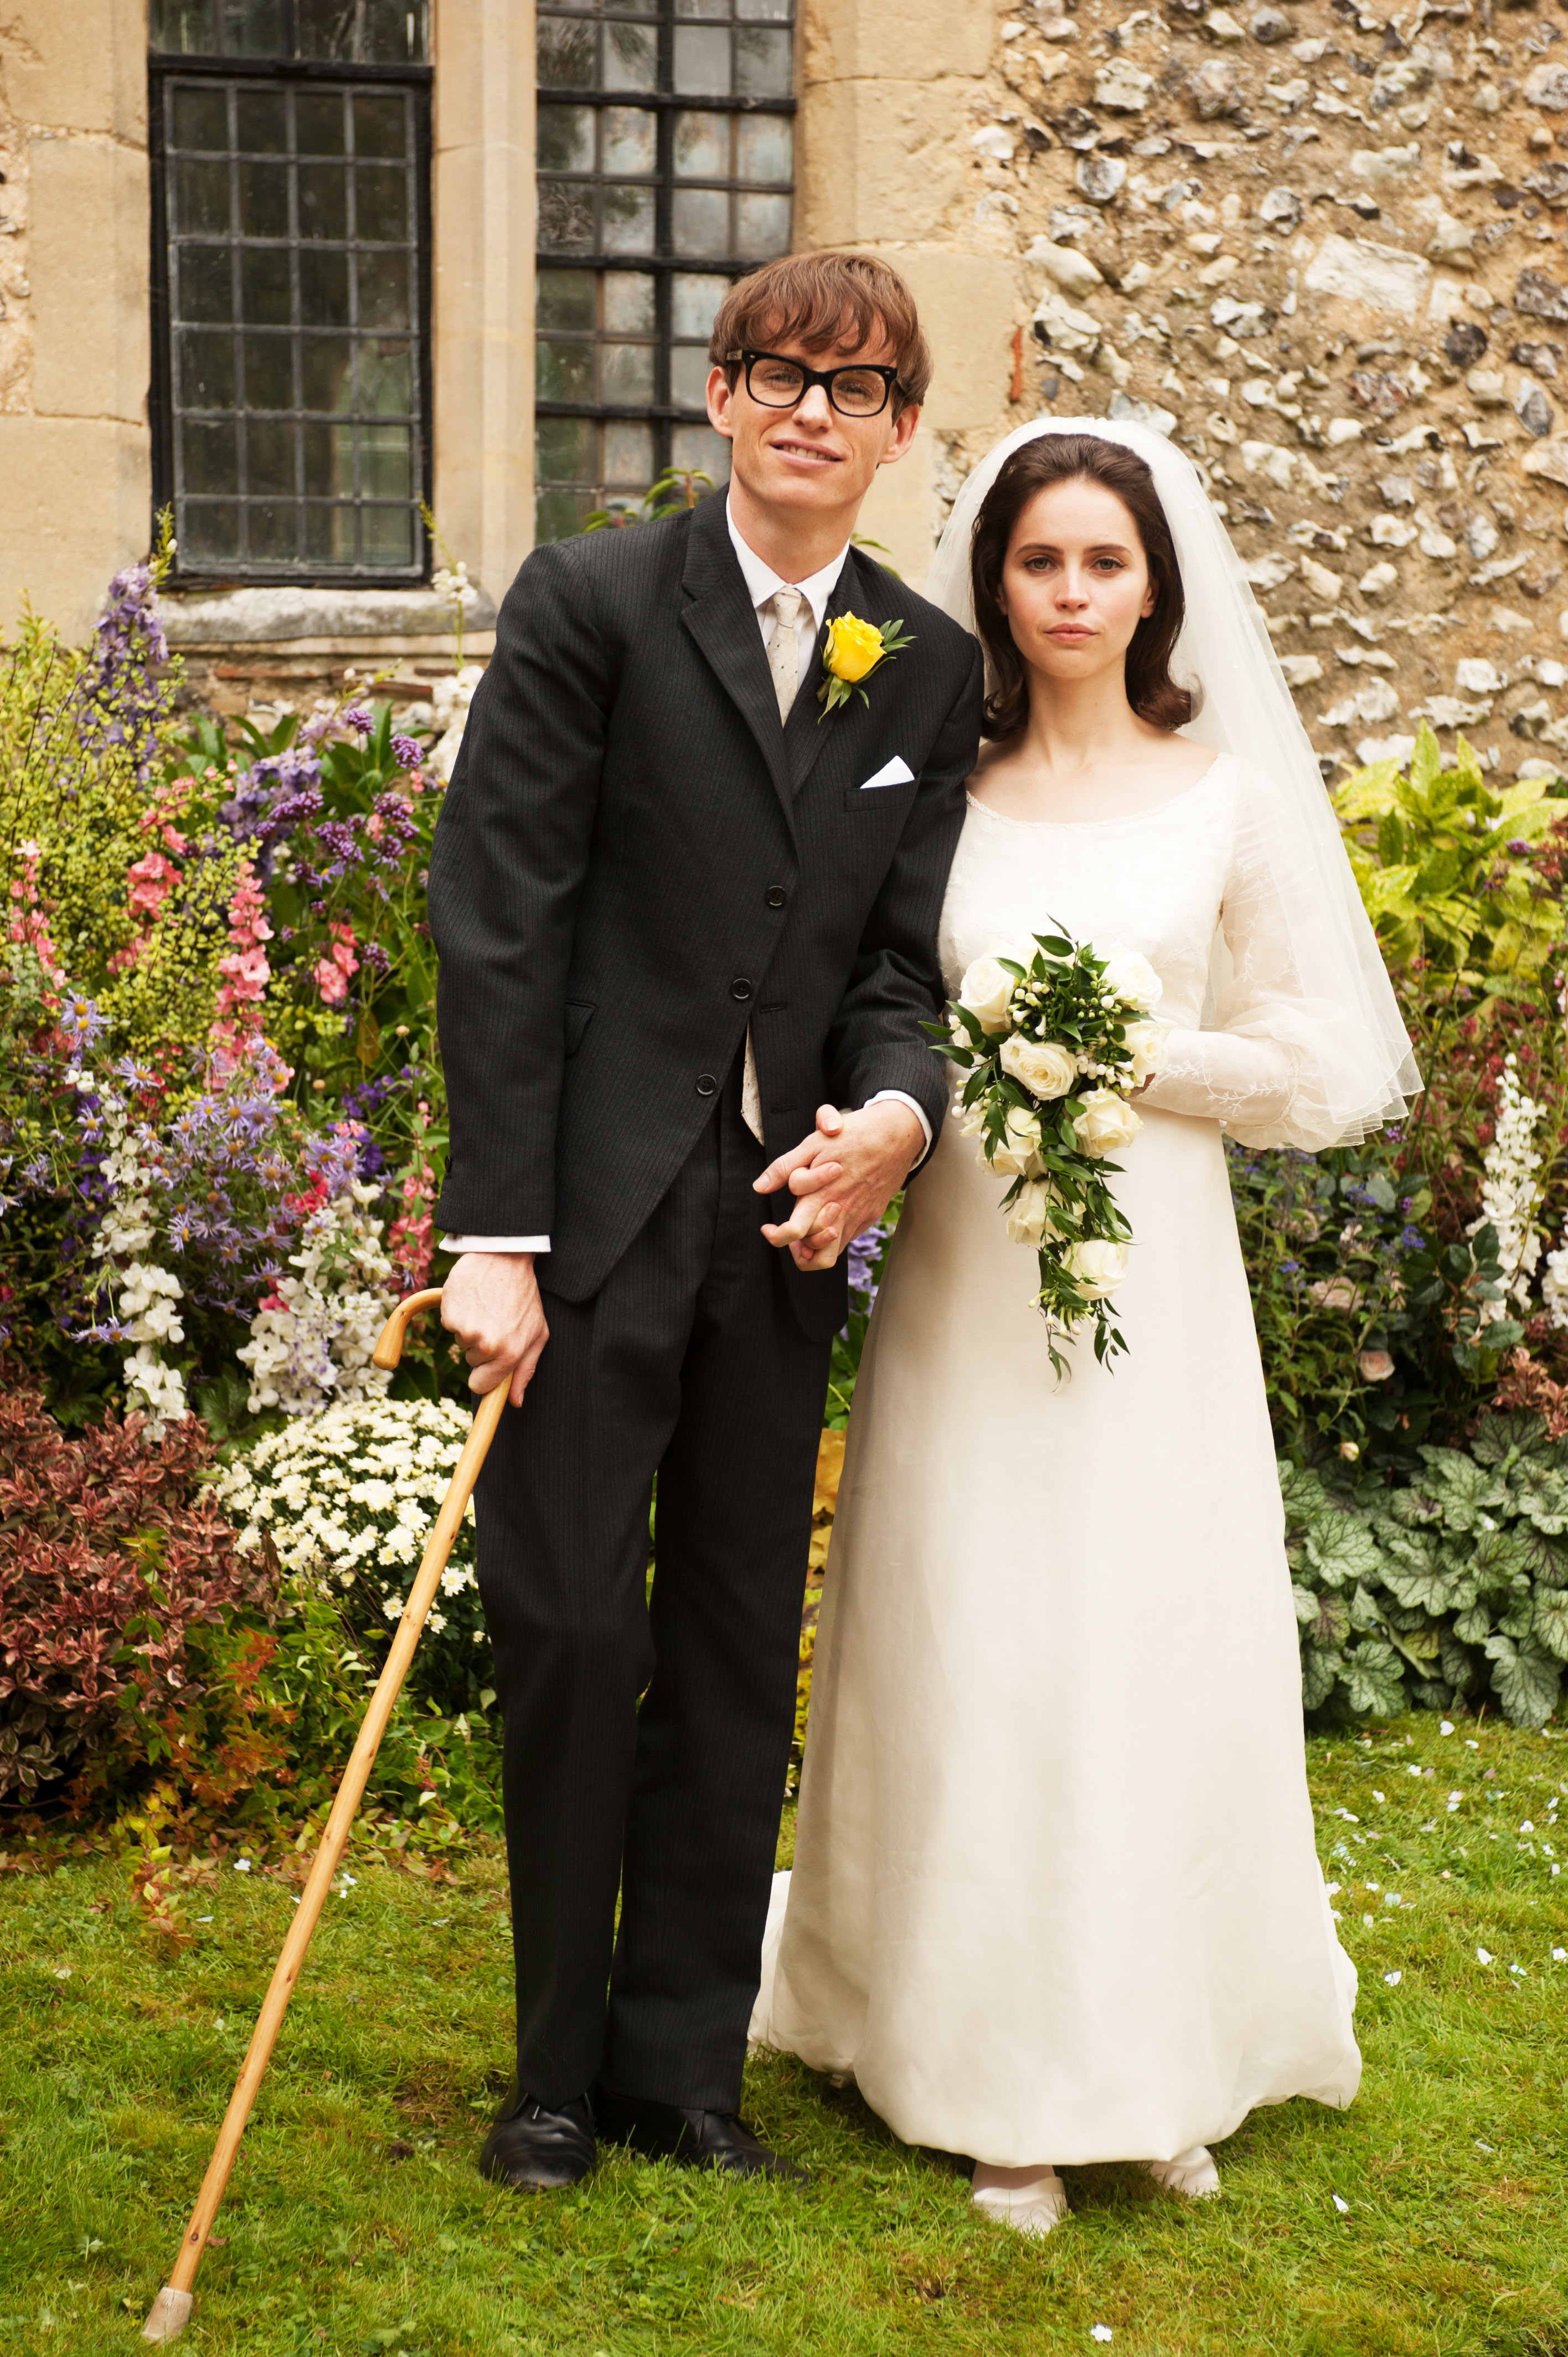 Steve Hawking and Jane Hawking wearing a suit and a wedding dress, respectively, on their wedding